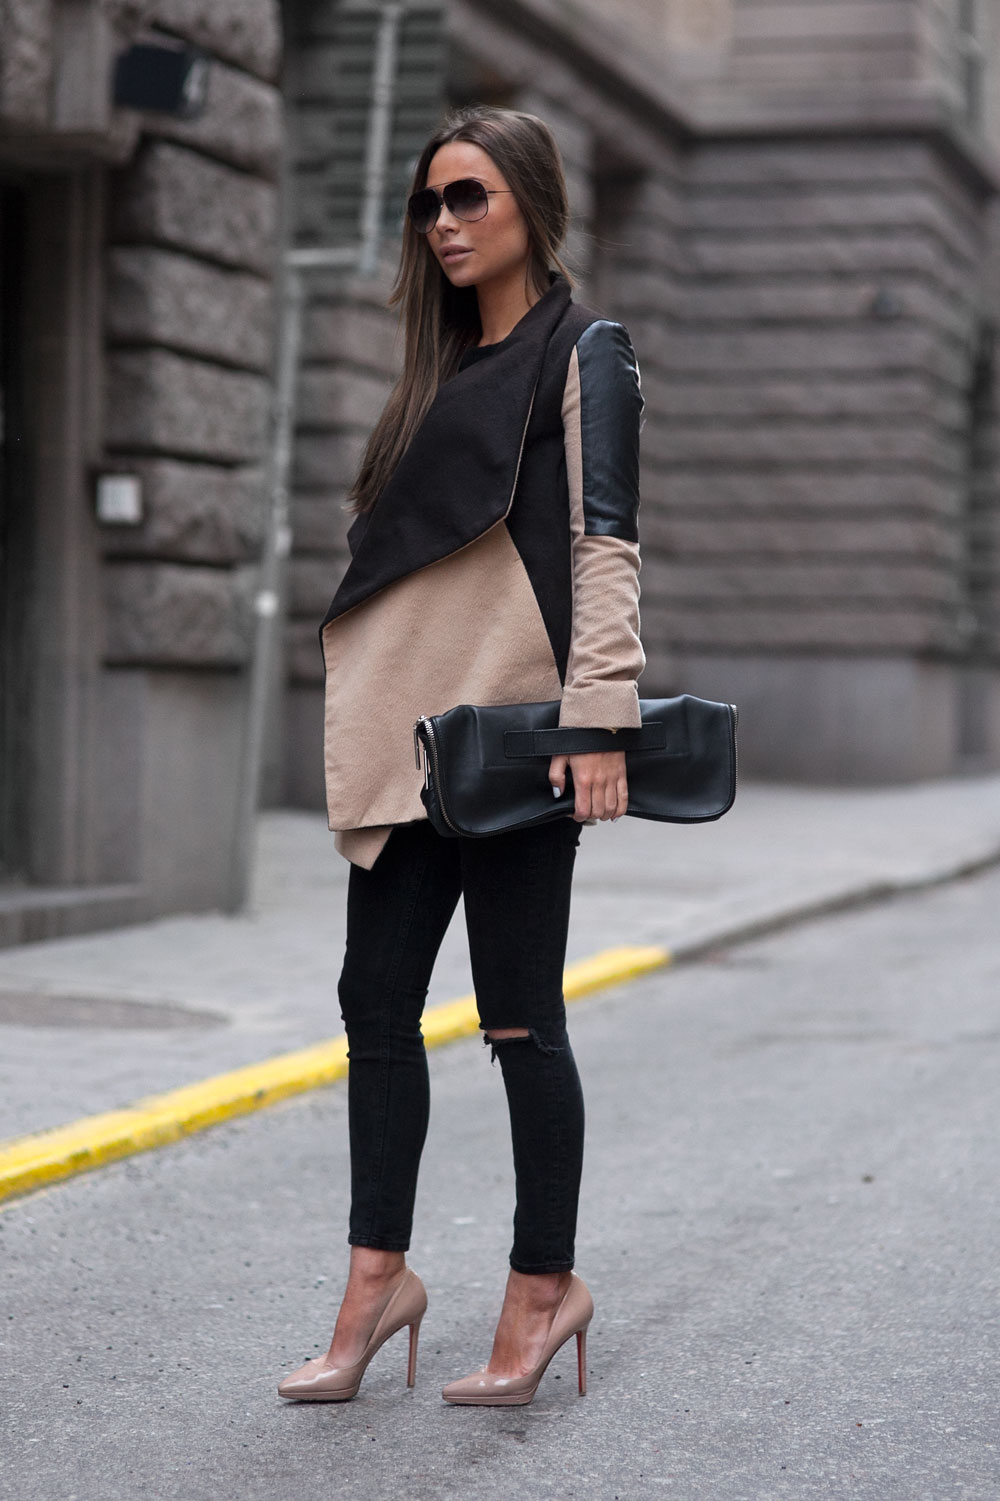 Black And Camel Outfits - This Is How To Style The Look - Just The Design